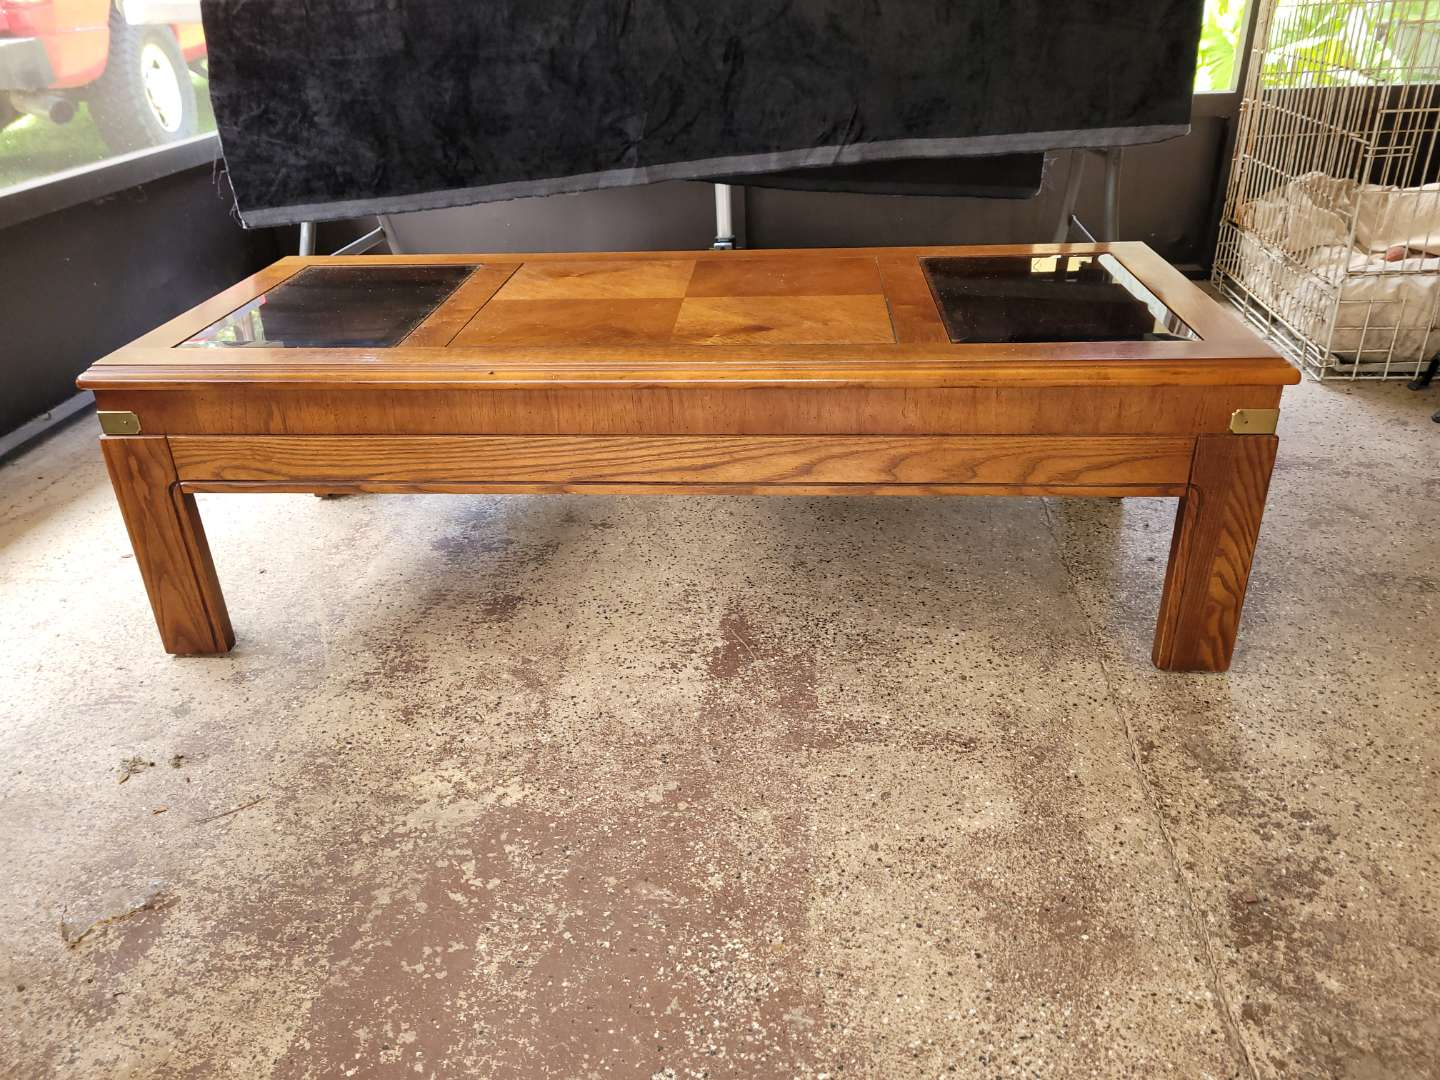 Lot # 151 Lane Furniture Wood Coffee Table w/ Glass Inserts & Brass Accents